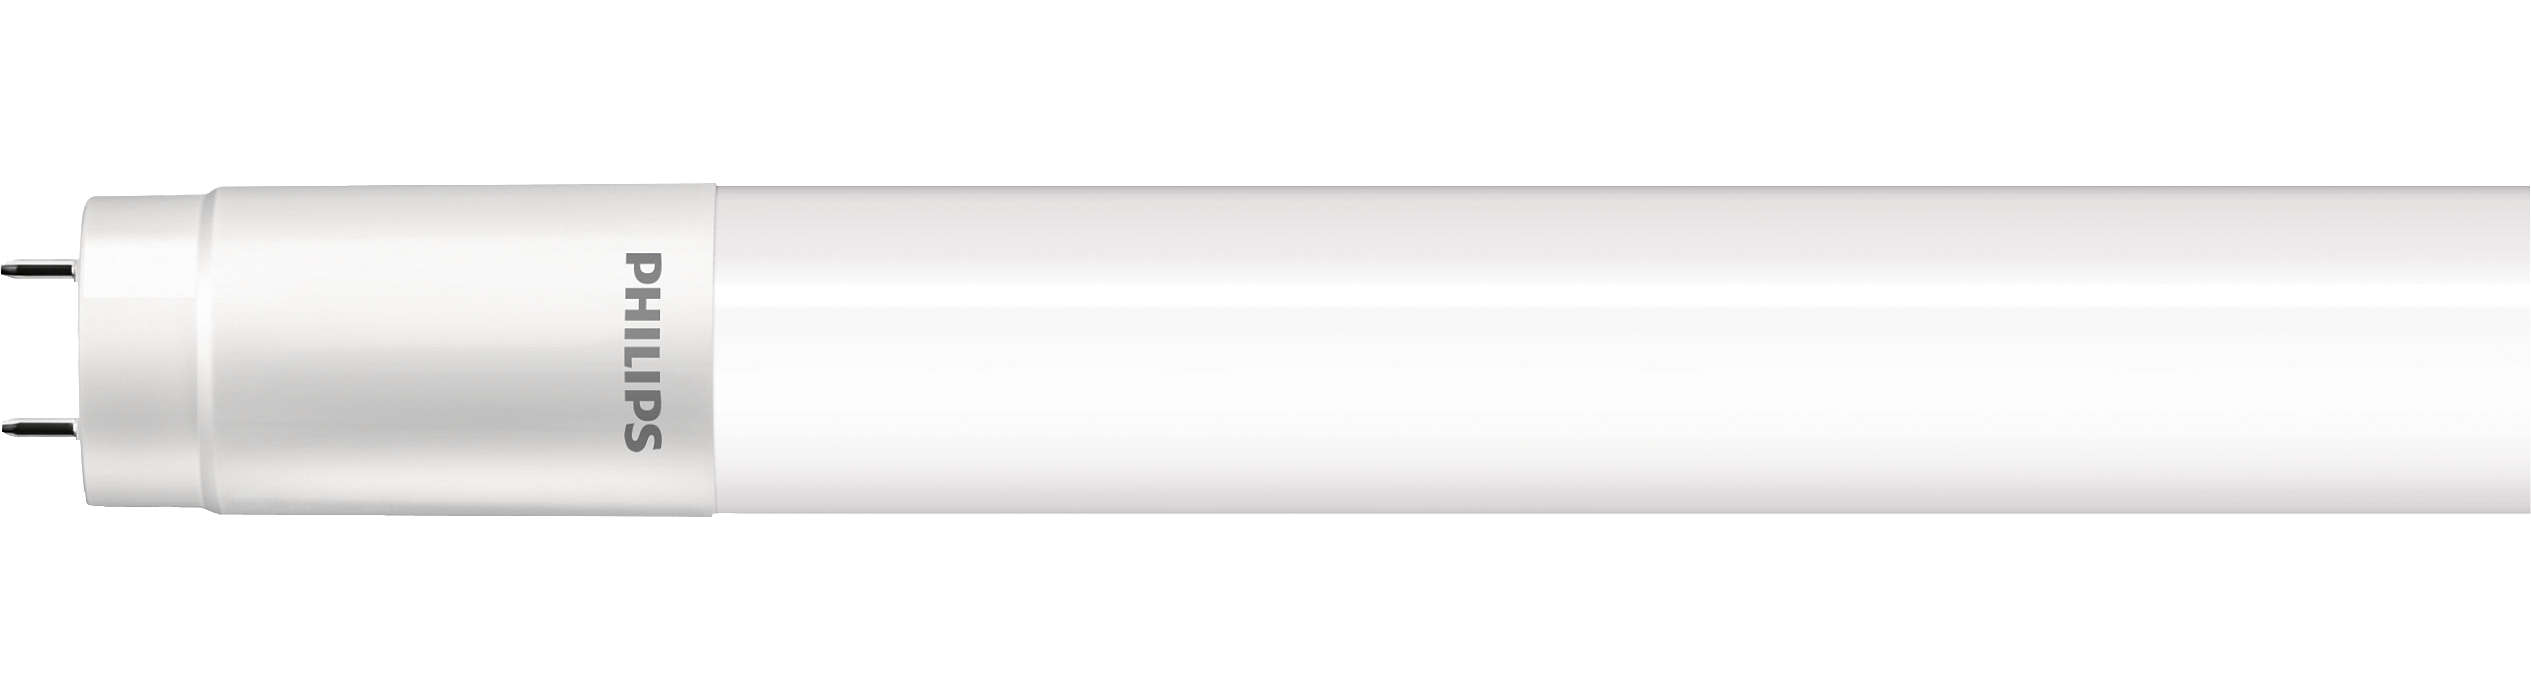 The affordable LED solution